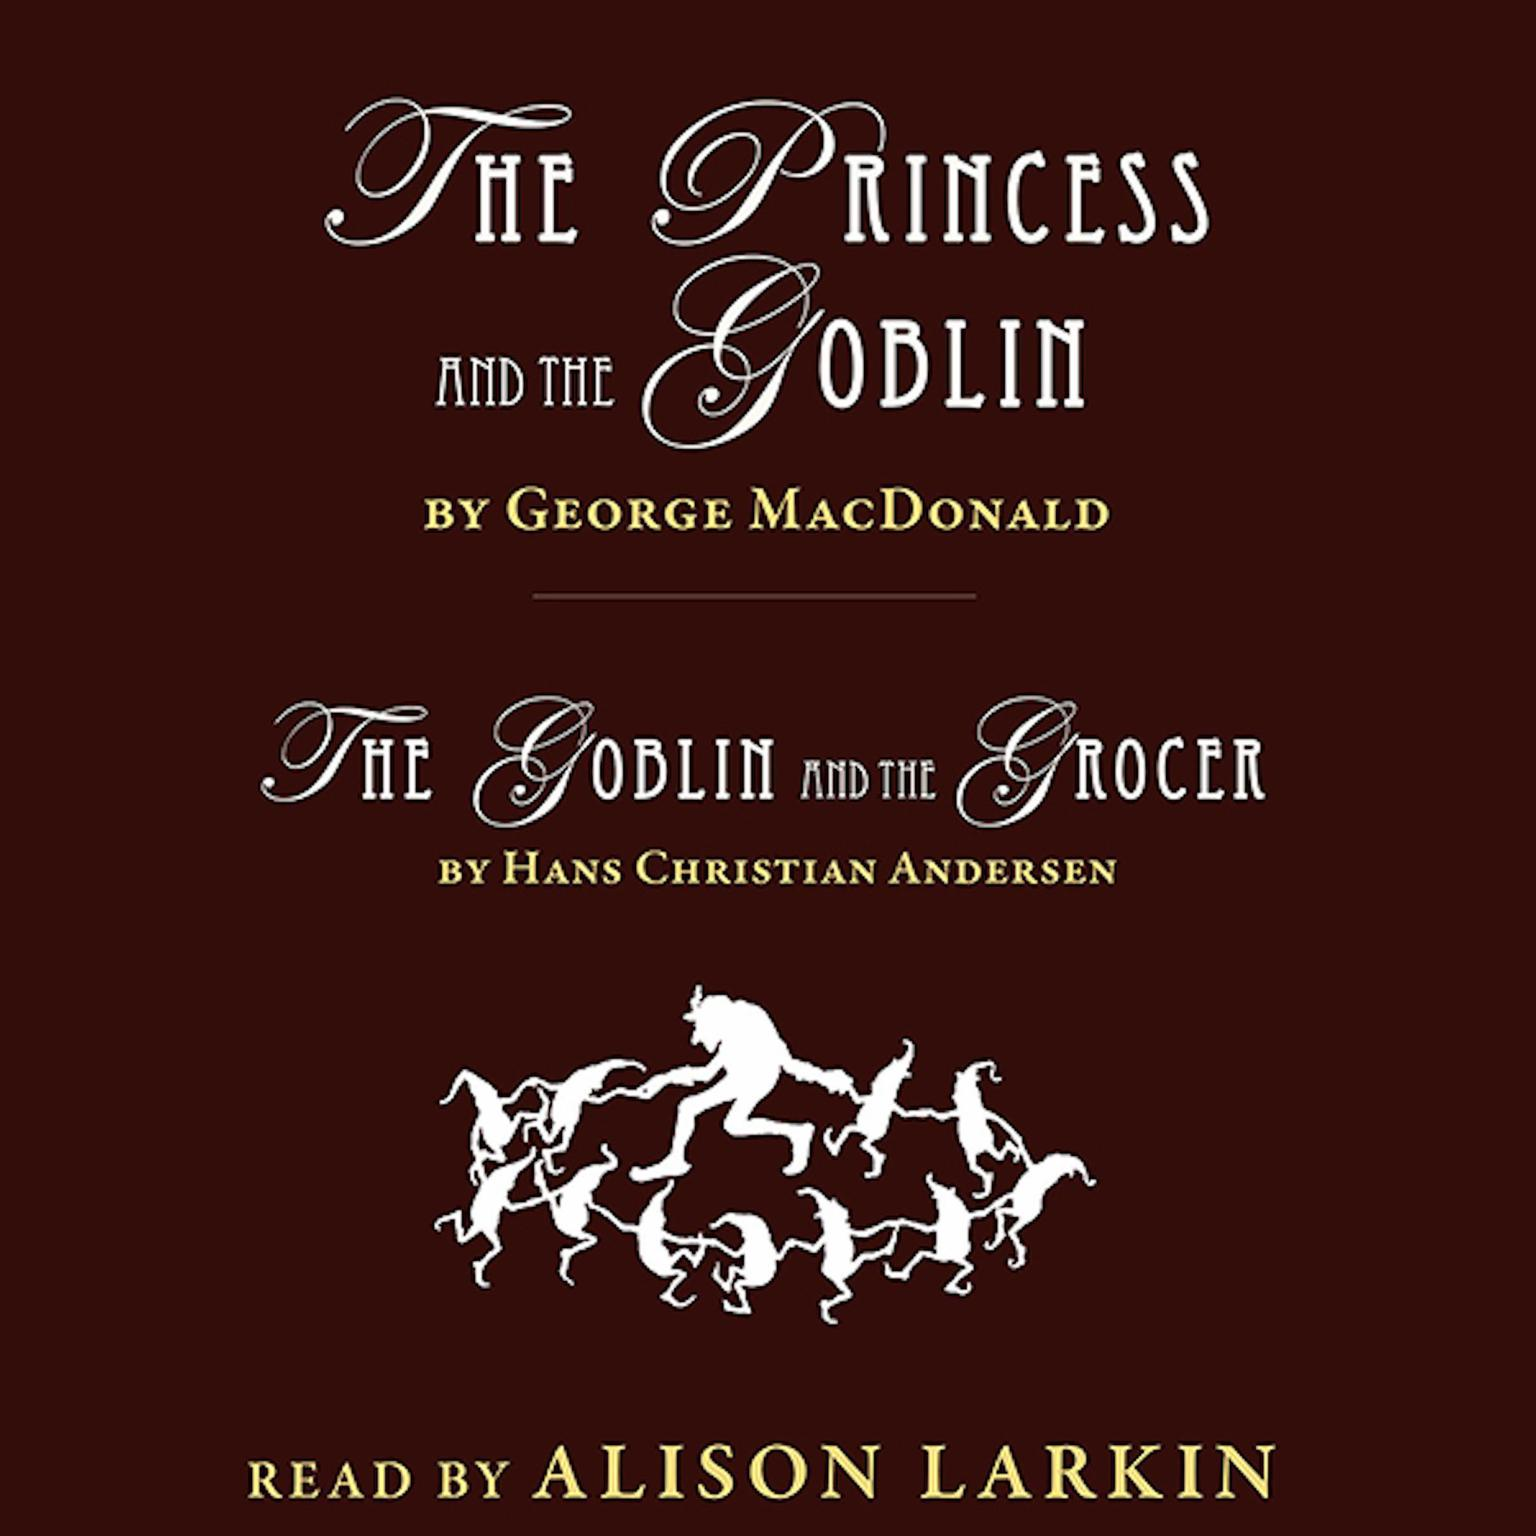 Printable The Princess and the Goblin and The Goblin and the Grocer Audiobook Cover Art